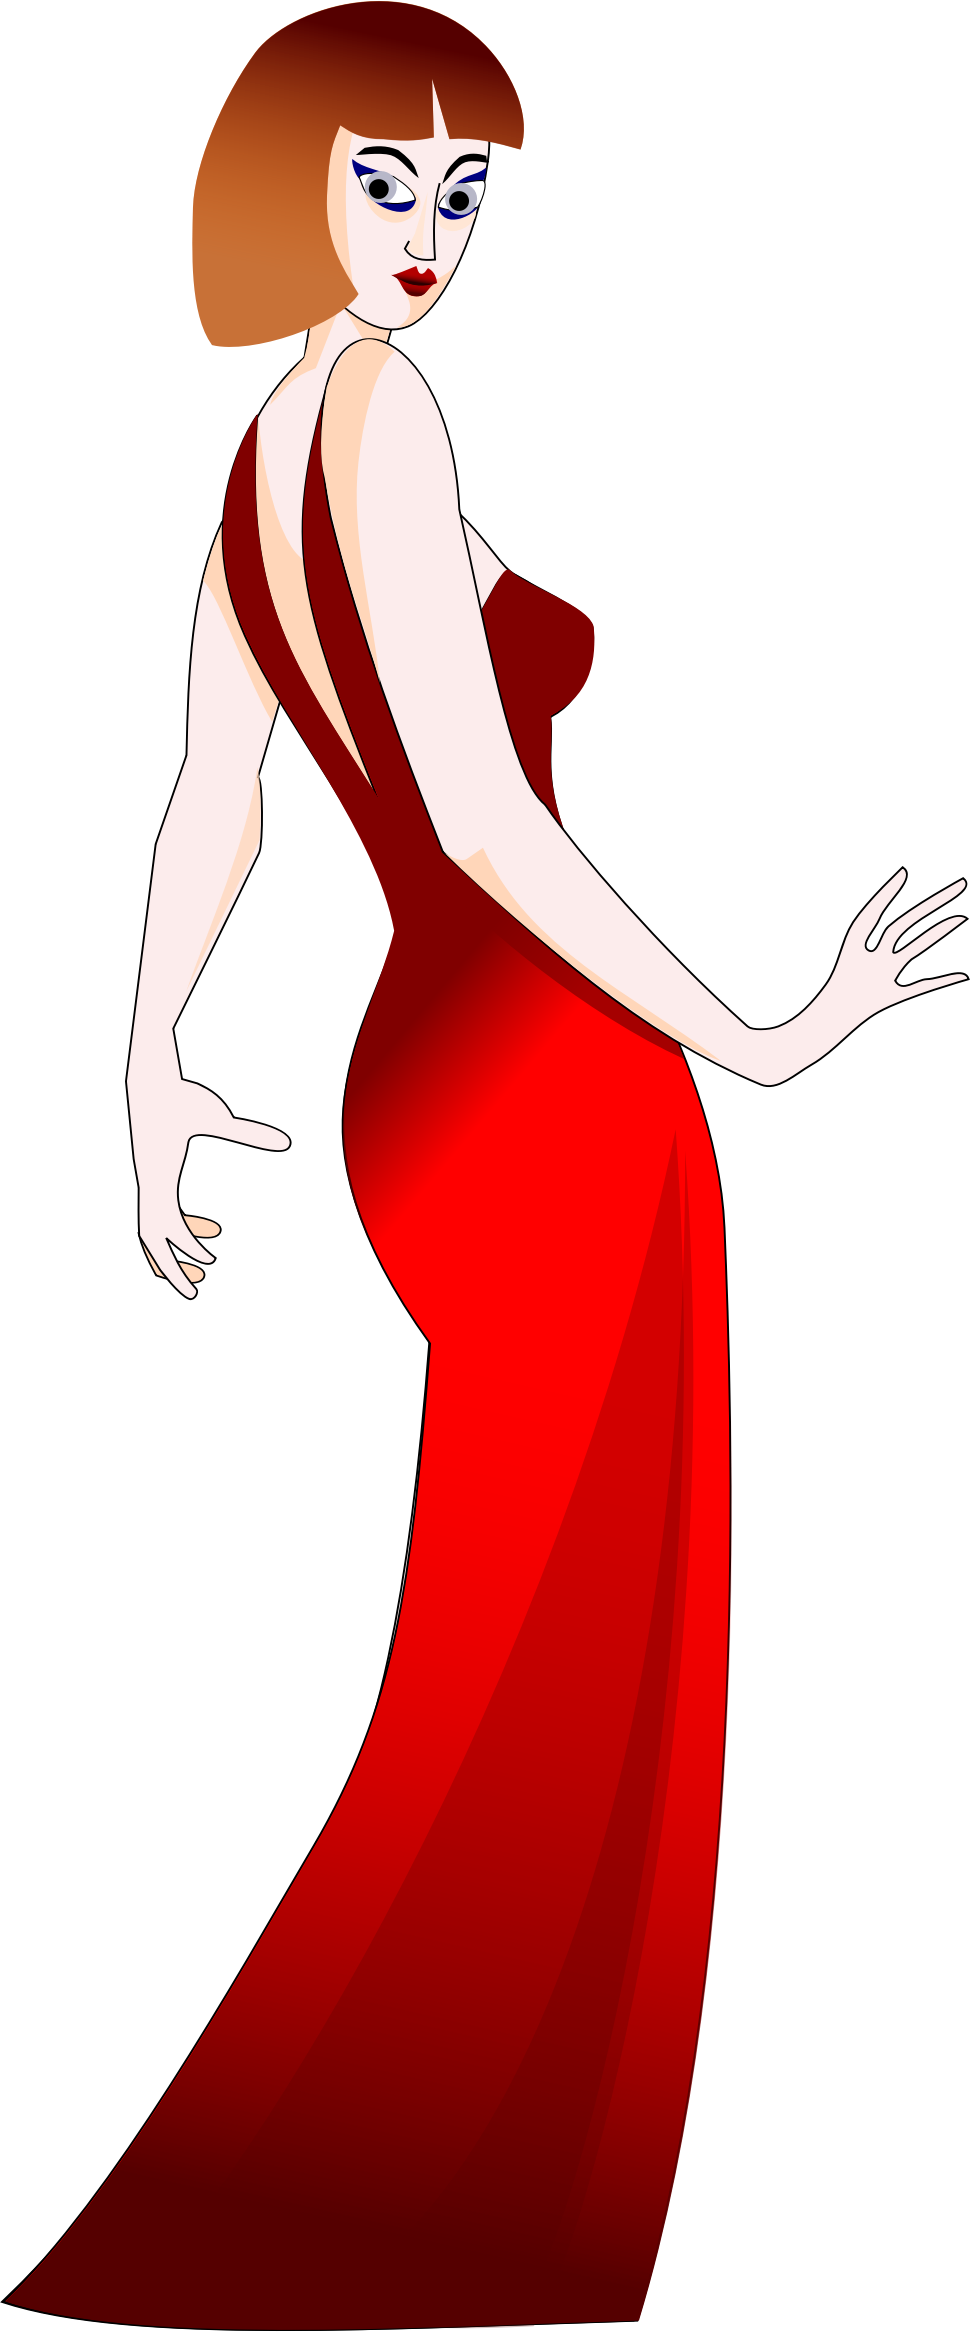 Woman In Red Dress by GDJ